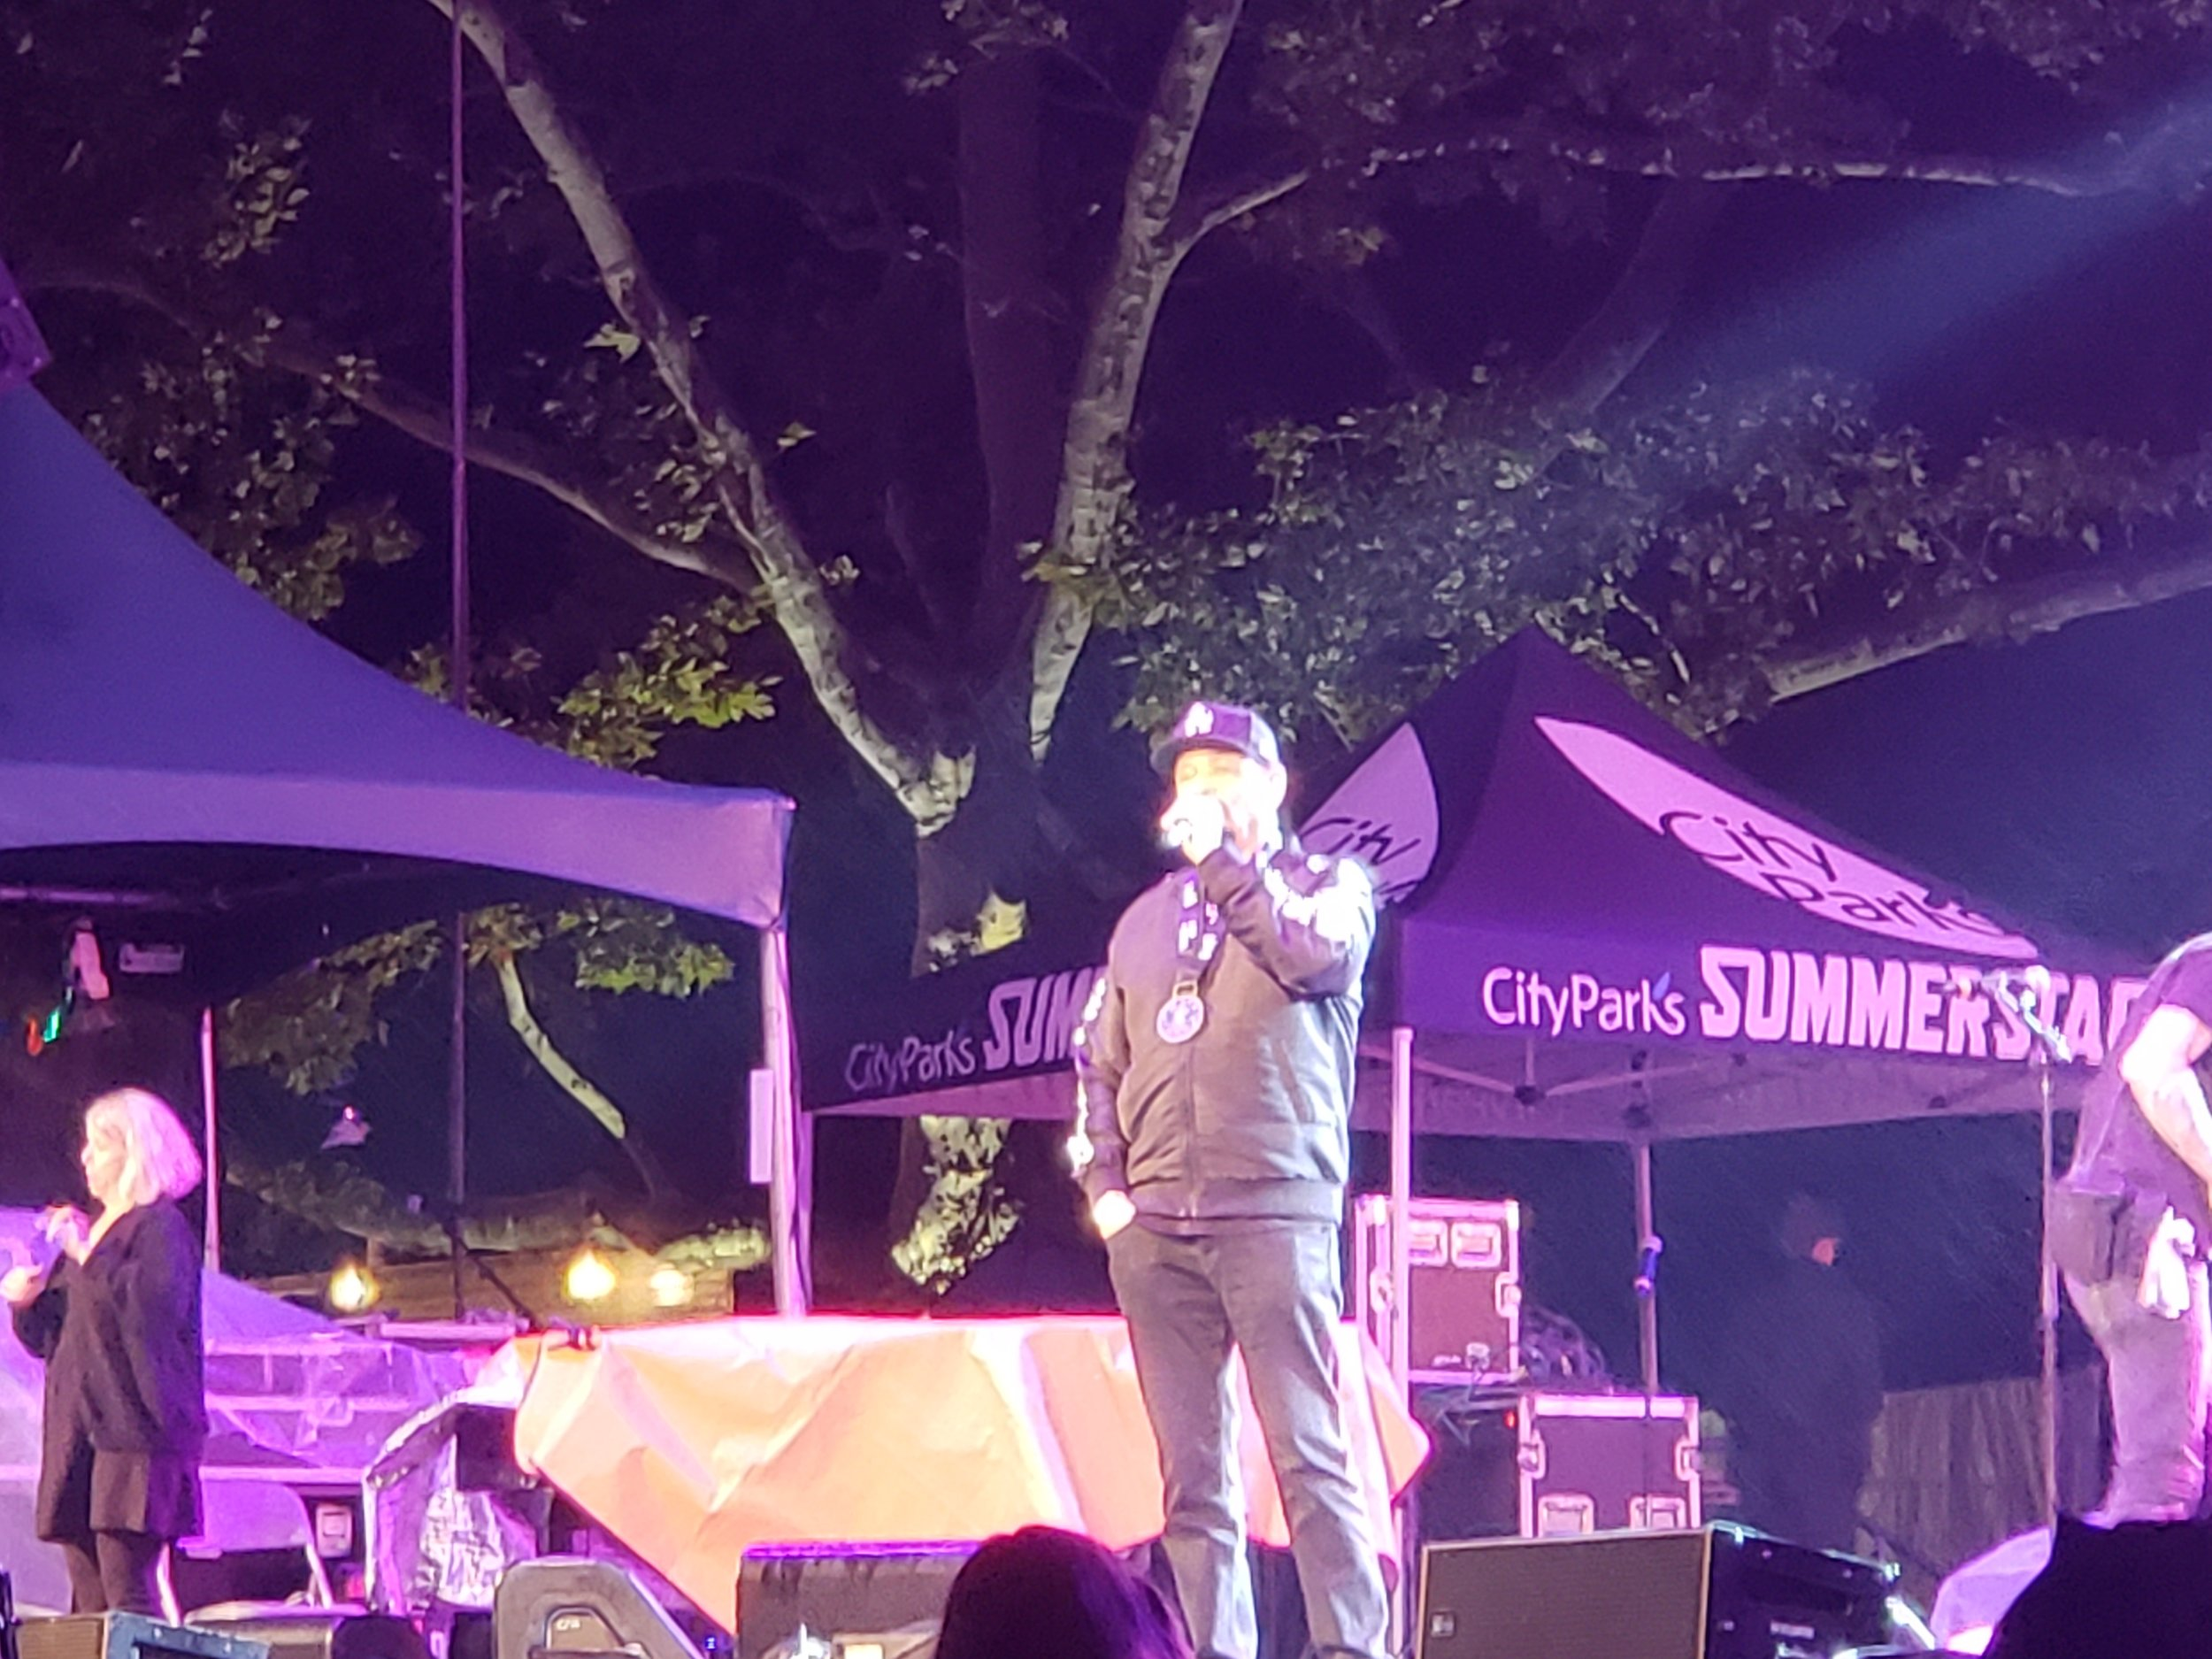 Ice T speaking at the No Barriers Concert with an ASL interpreter in the background.